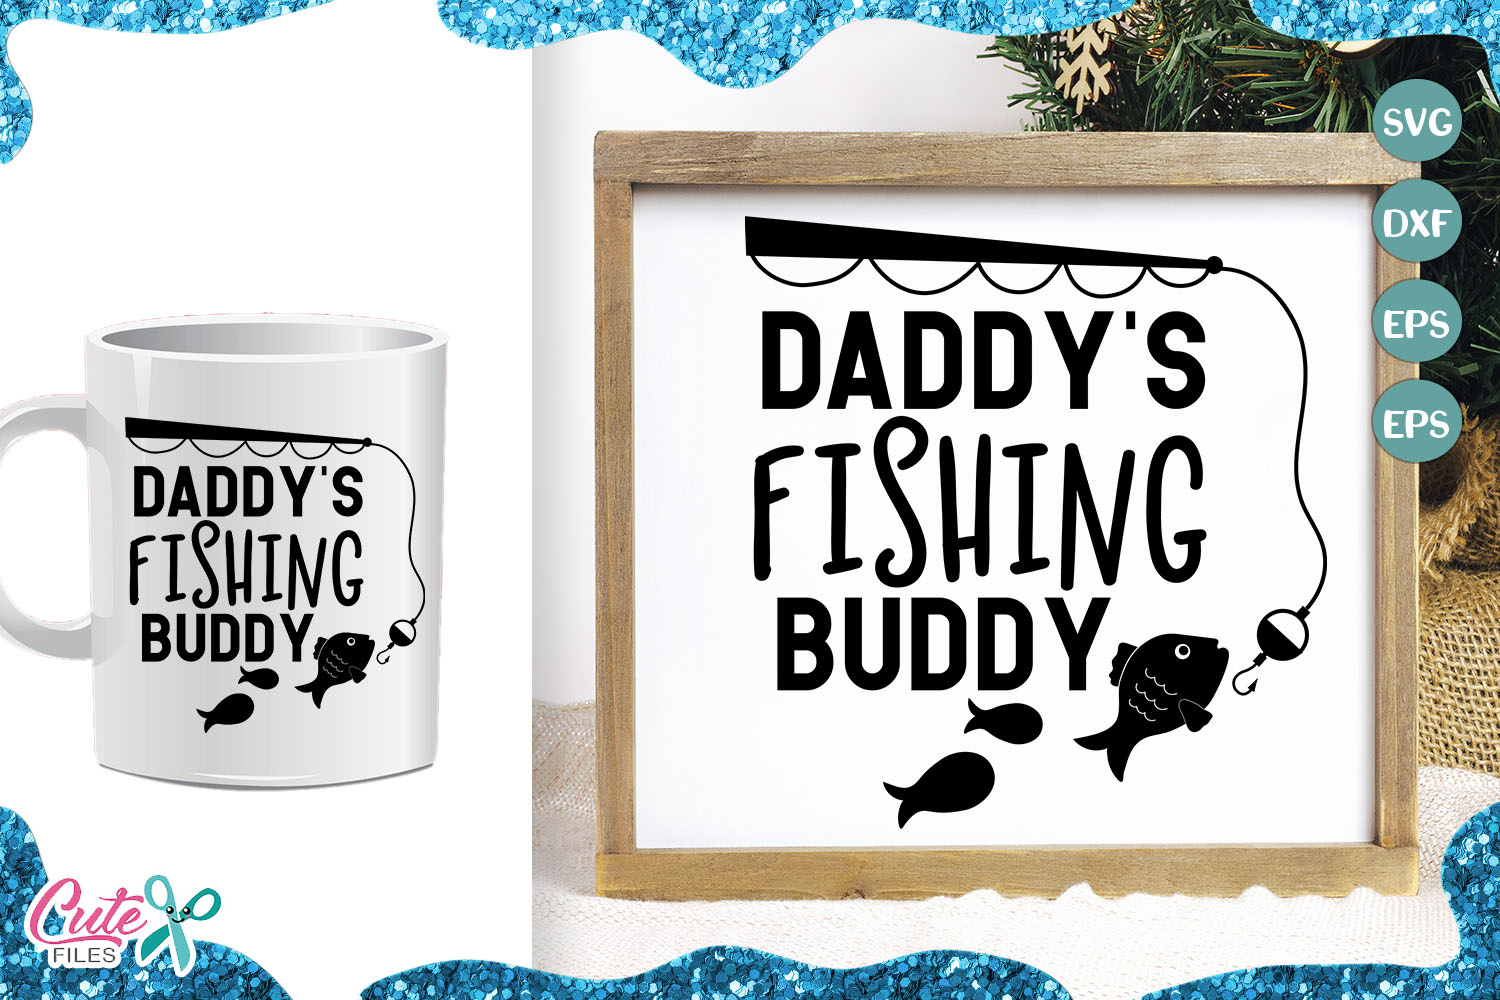 Download Free Daddys Fishing Buddy Cut File Graphic By Cute Files Creative for Cricut Explore, Silhouette and other cutting machines.